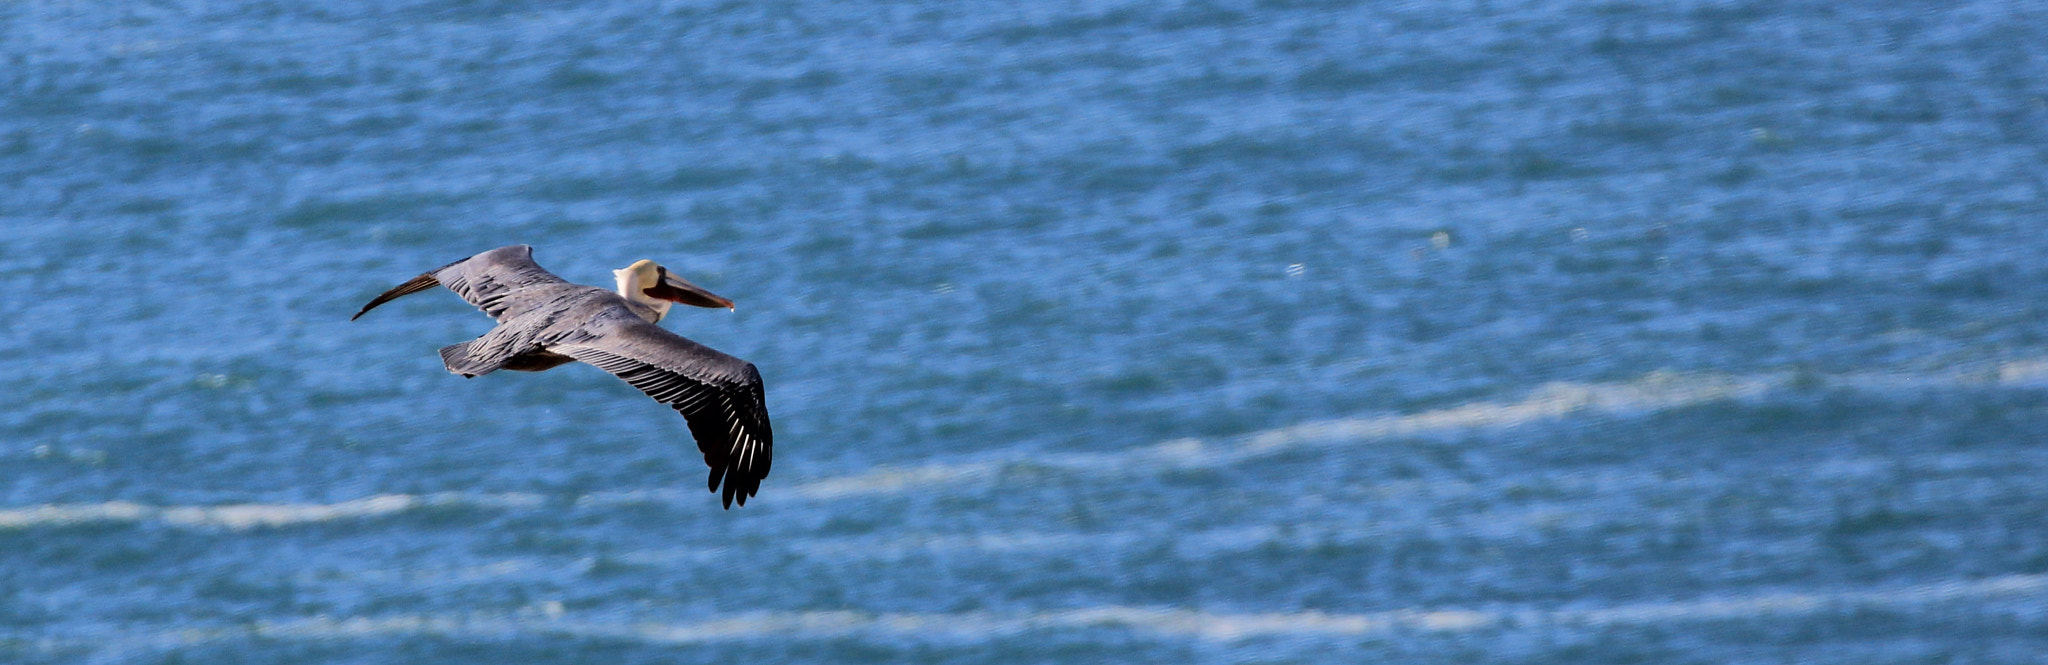 Photograph Pelican over the Pacific by Parker Jackson on 500px